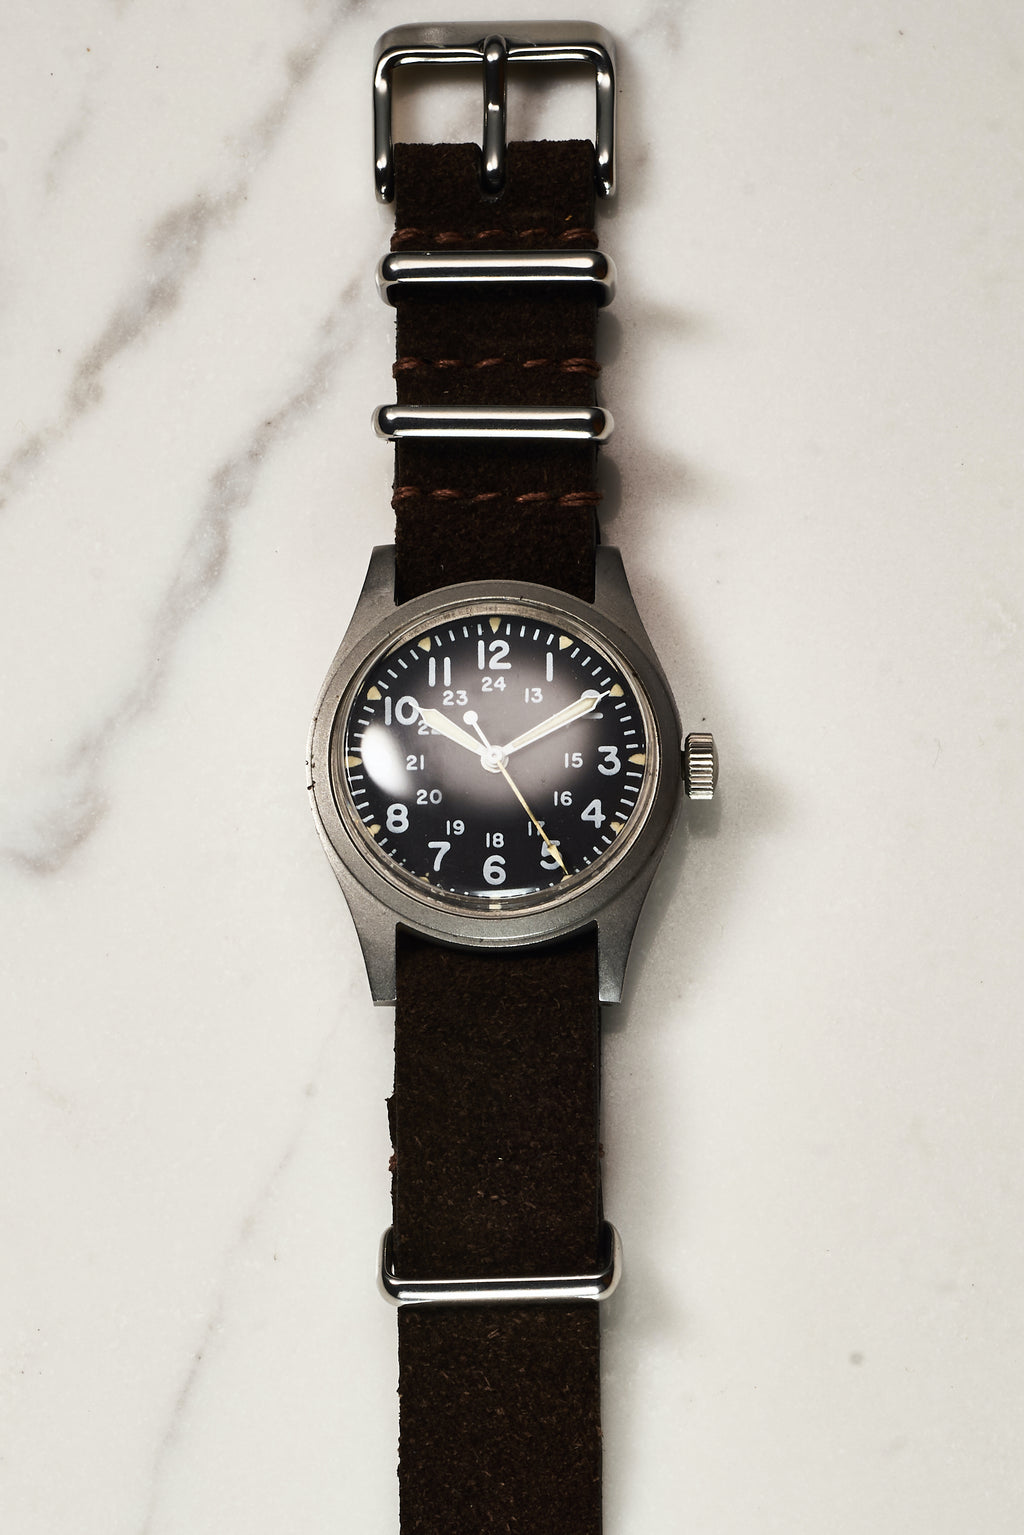 Hamilton Military Field Watch - David Lane Design